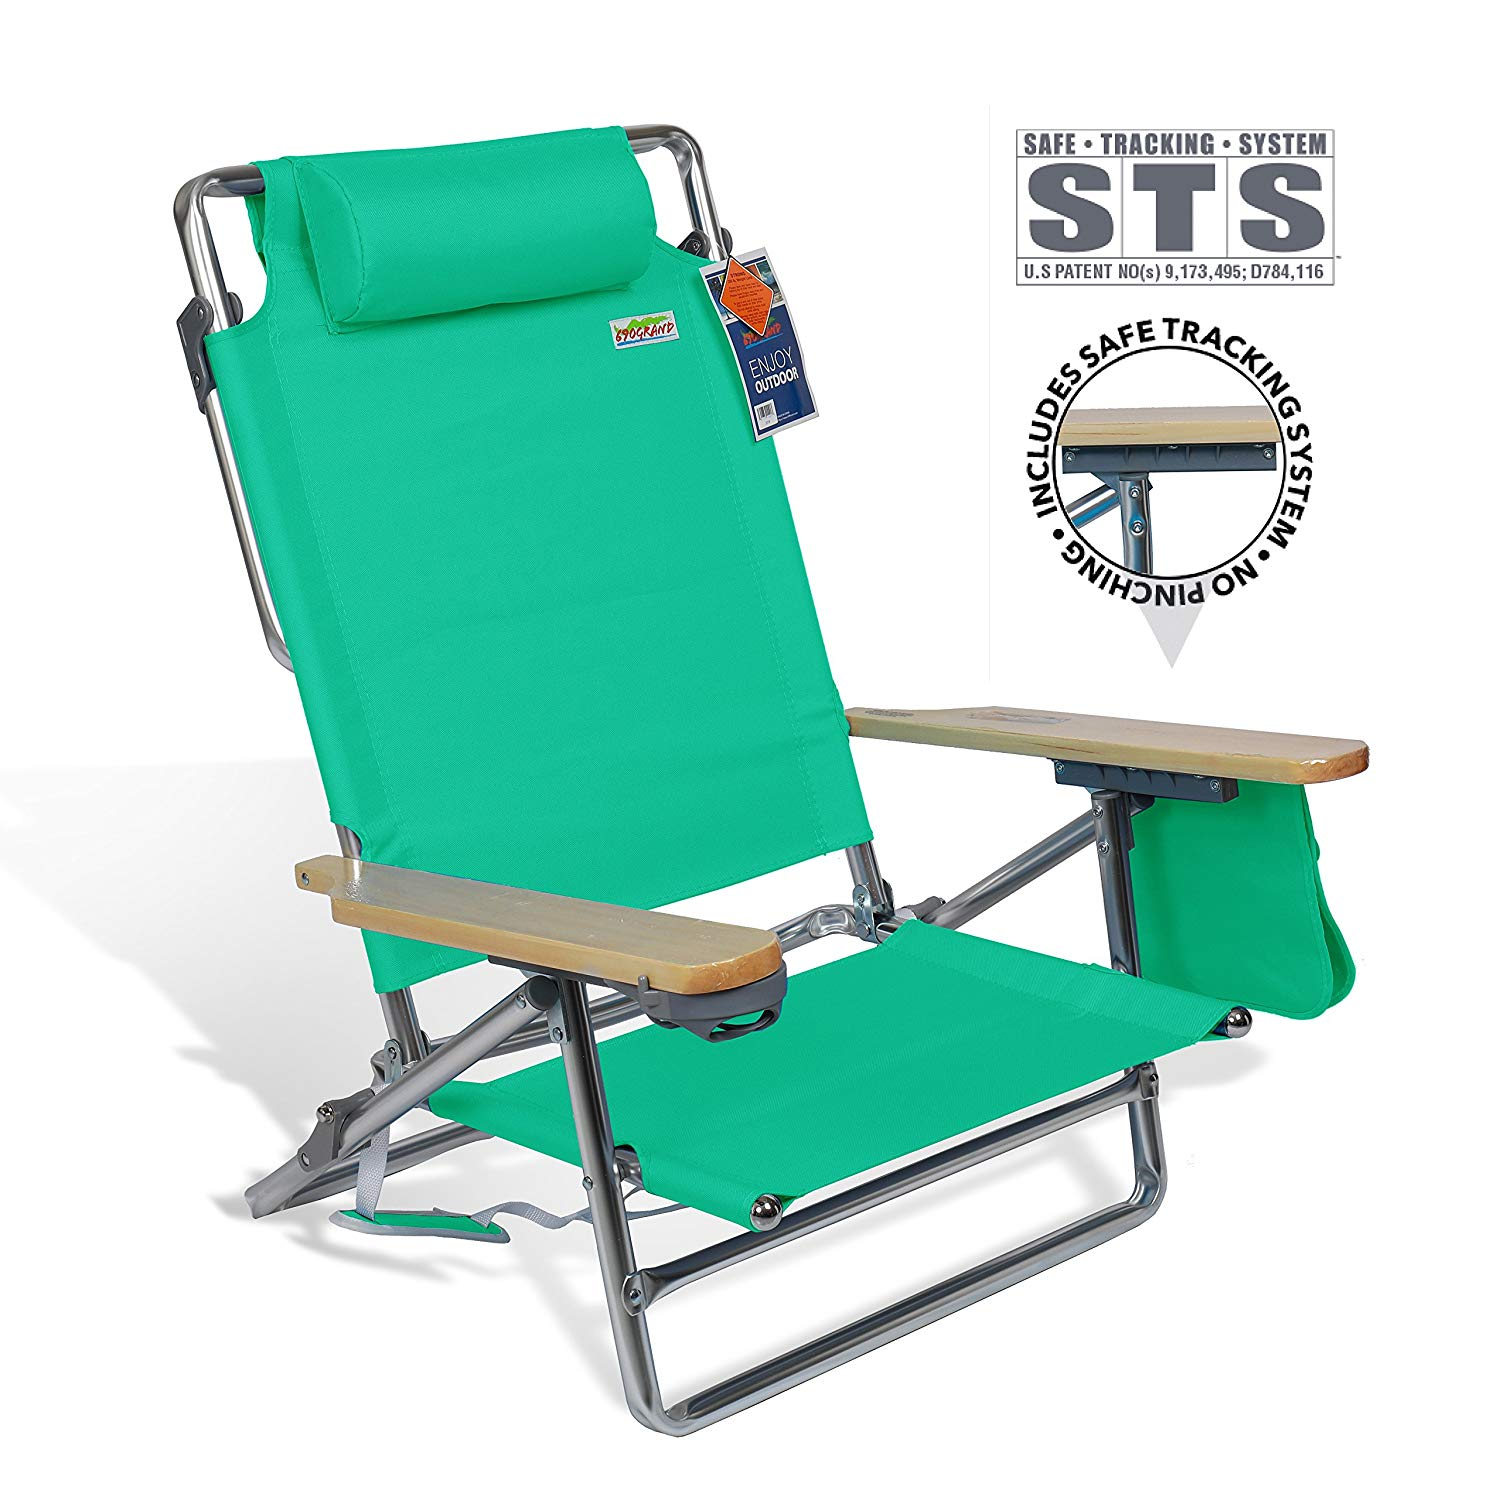 690GRAND Best Folding Beach Chair with Extra Wide Seating Area, 5 Position Lay Flat Reclining Beach Chair with STS including Drink Holder & Towel Bar